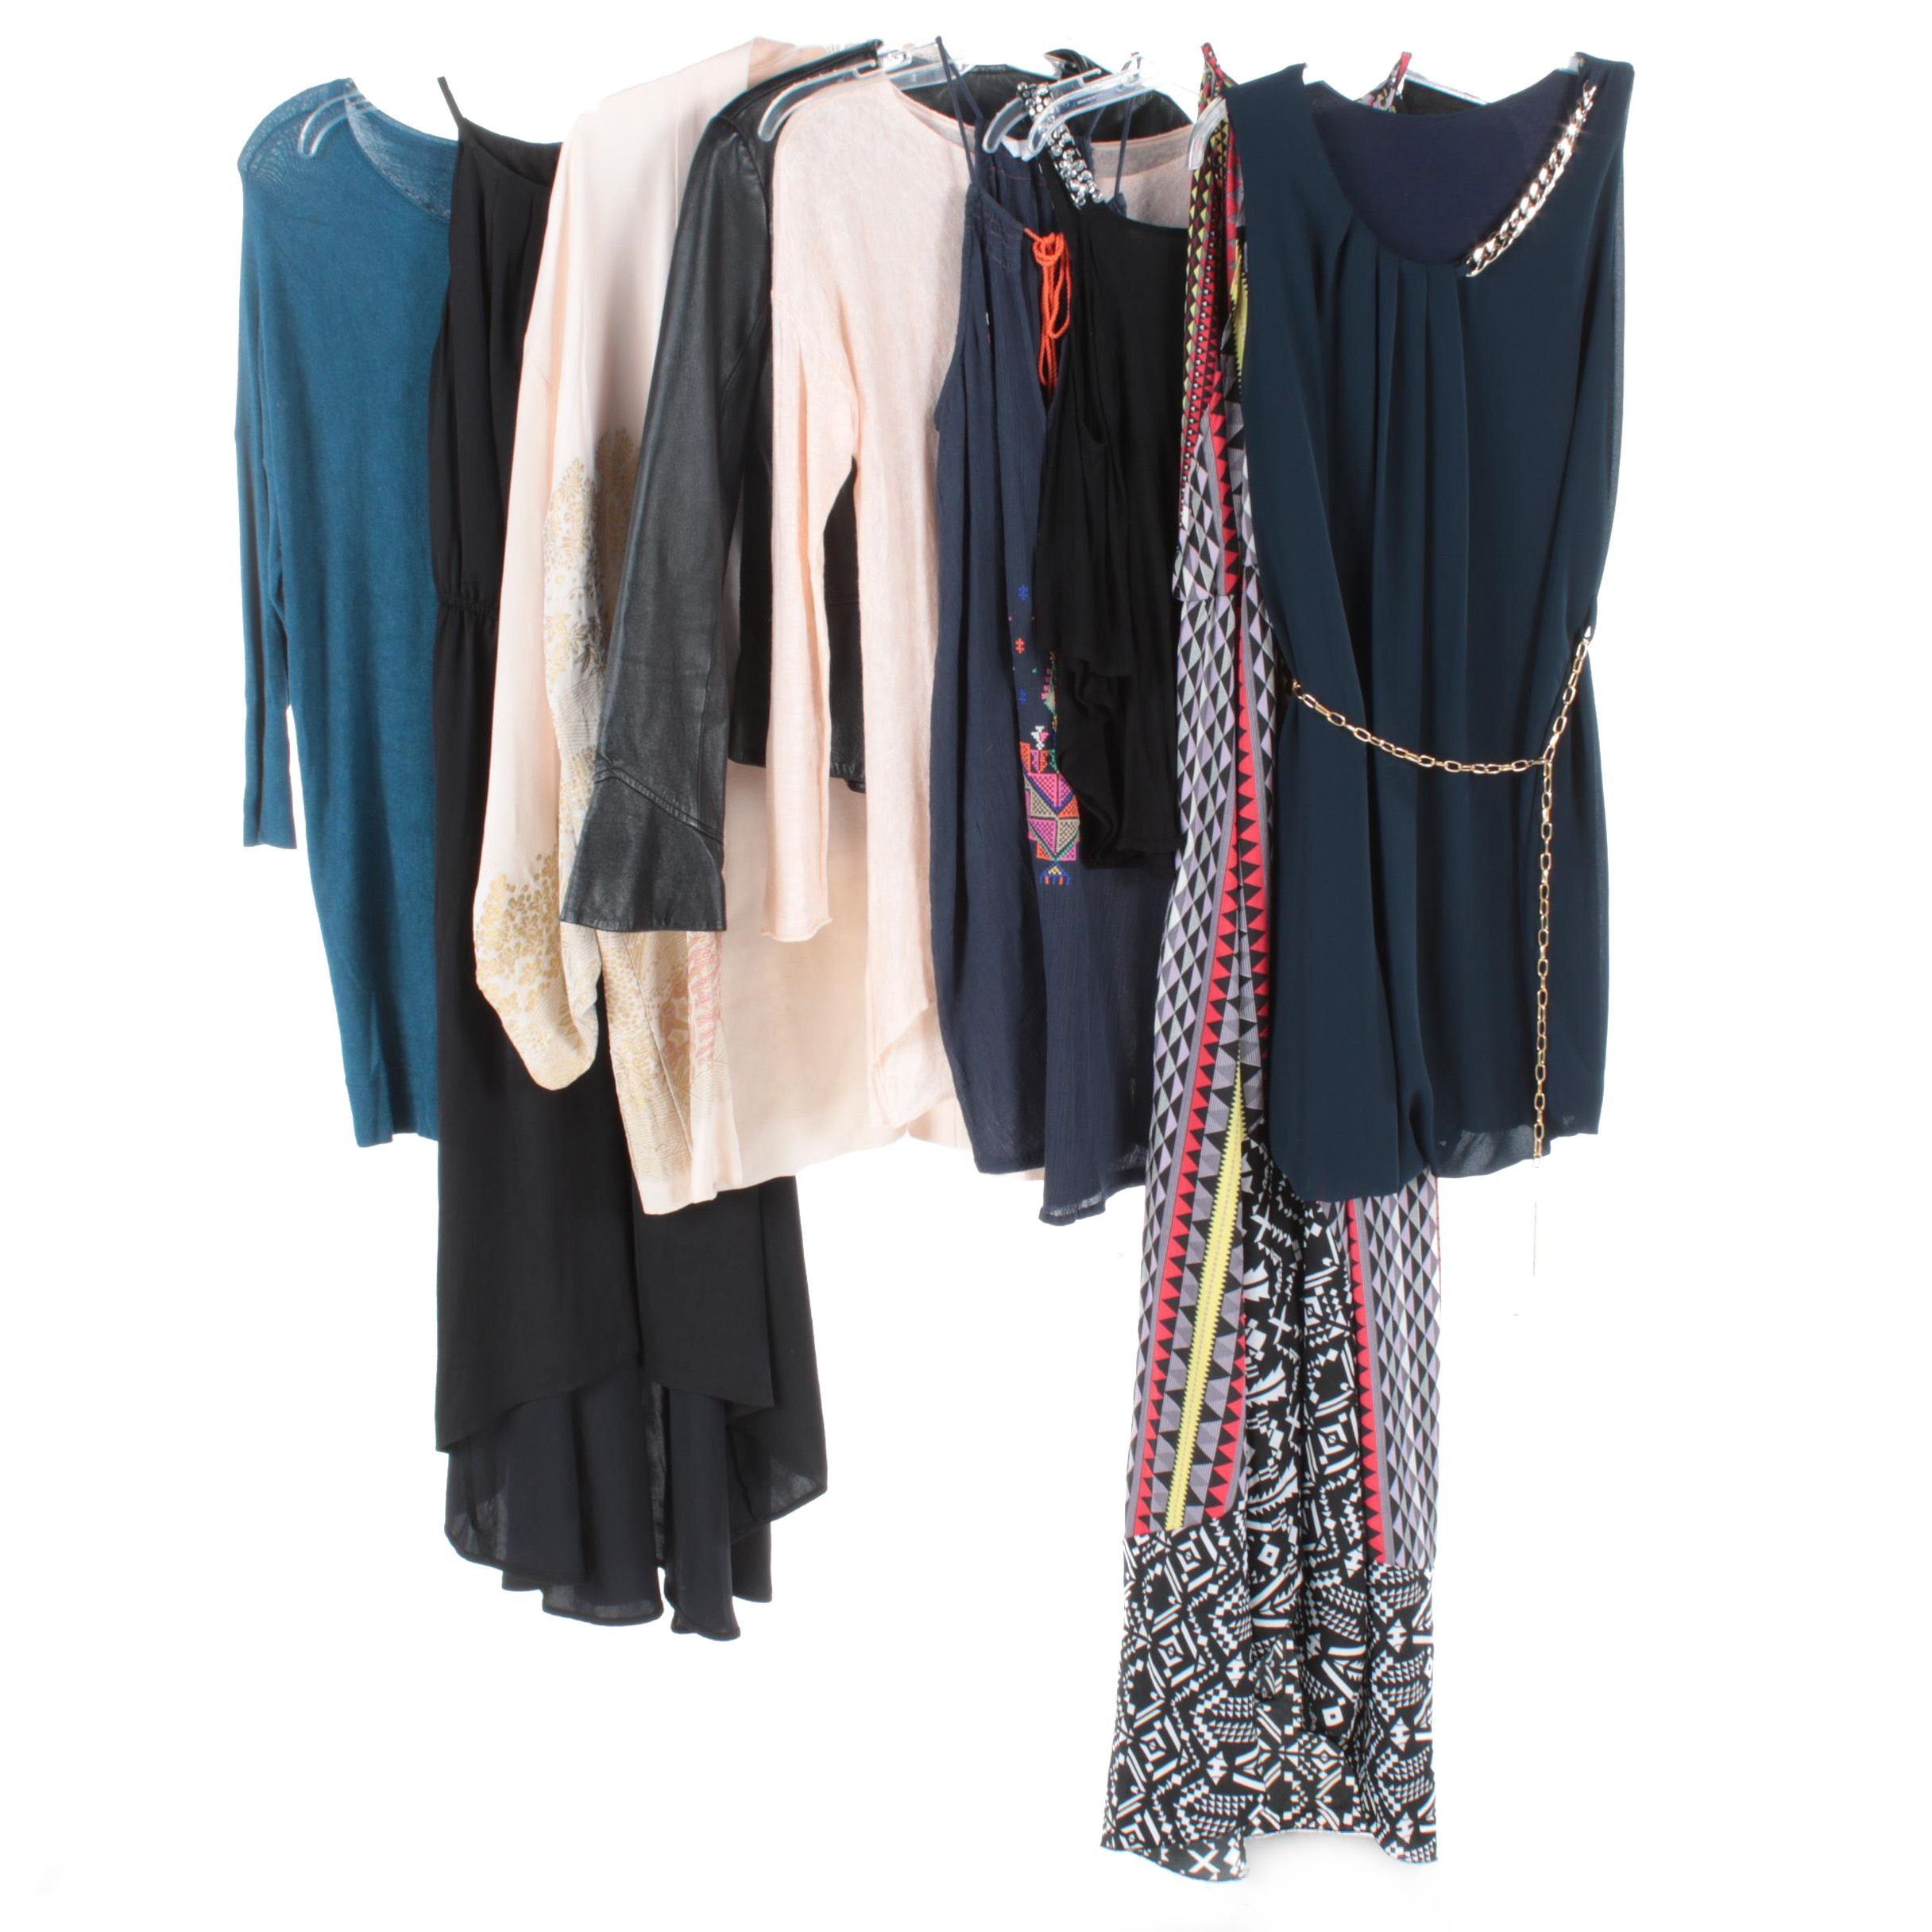 Women's Dresses, Separates and Leather Jacket Including Eileen Fisher